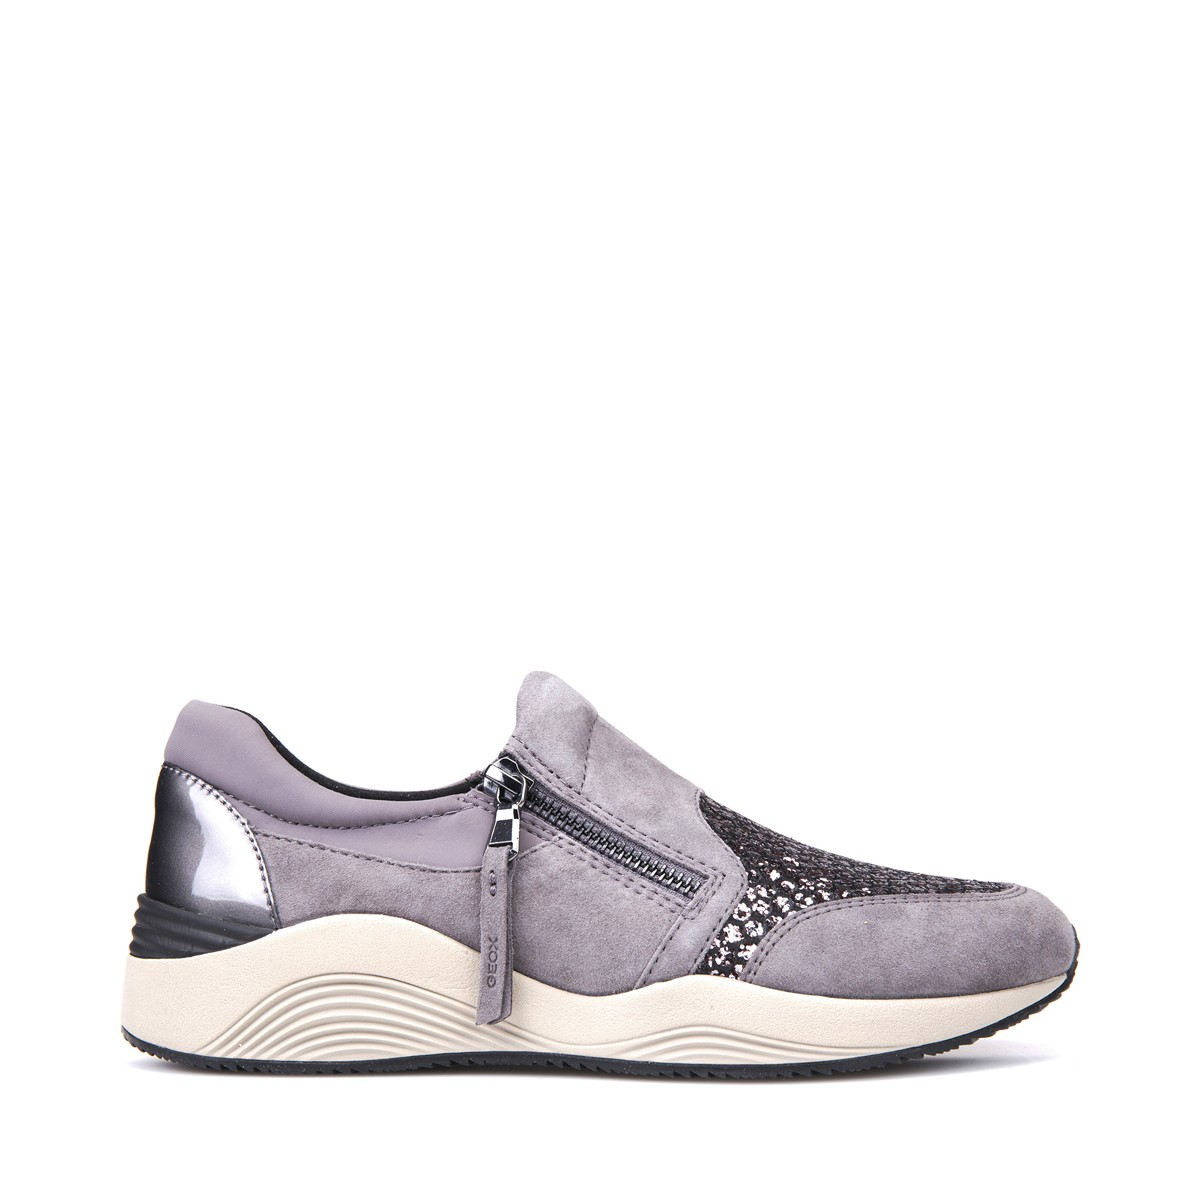 ffa8e82cd620 geox-scarpe-donna-sneakers-slip-on-in-camoscio-grigio -linea-ophira-art-d620sa.jpg